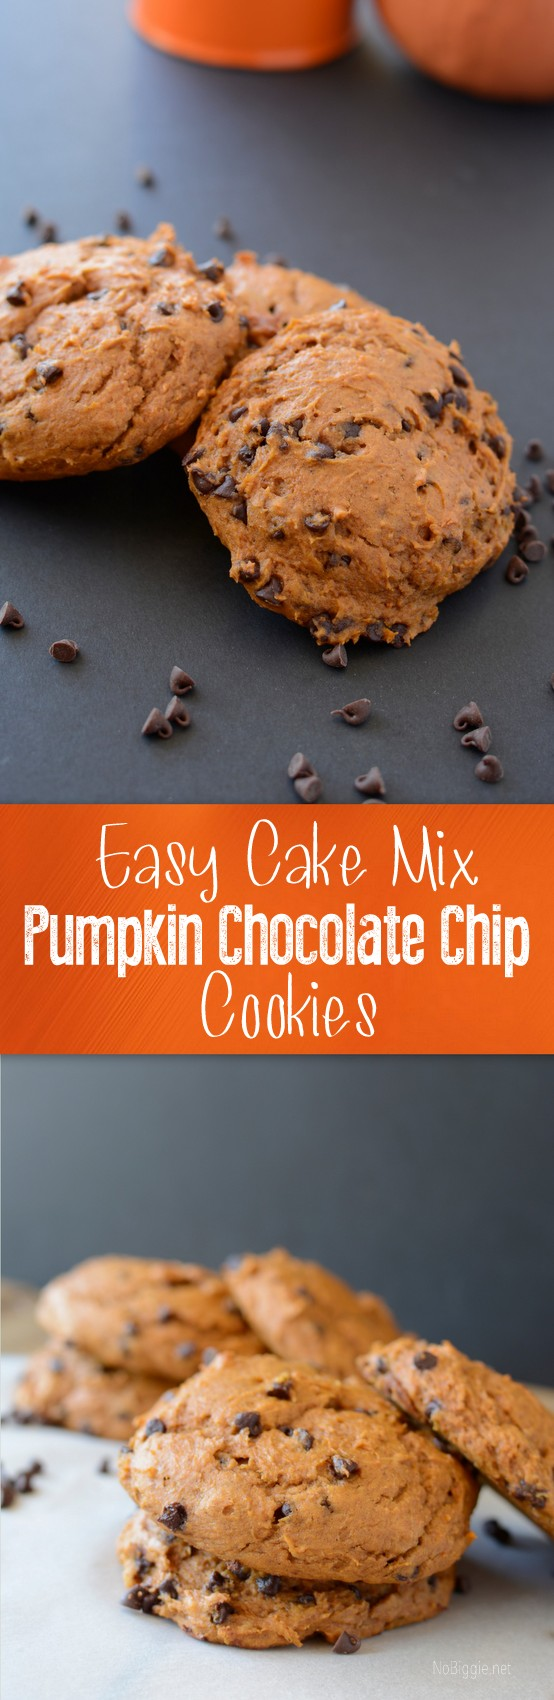 How To Make Cookies With Cake Mix And Pumpkin